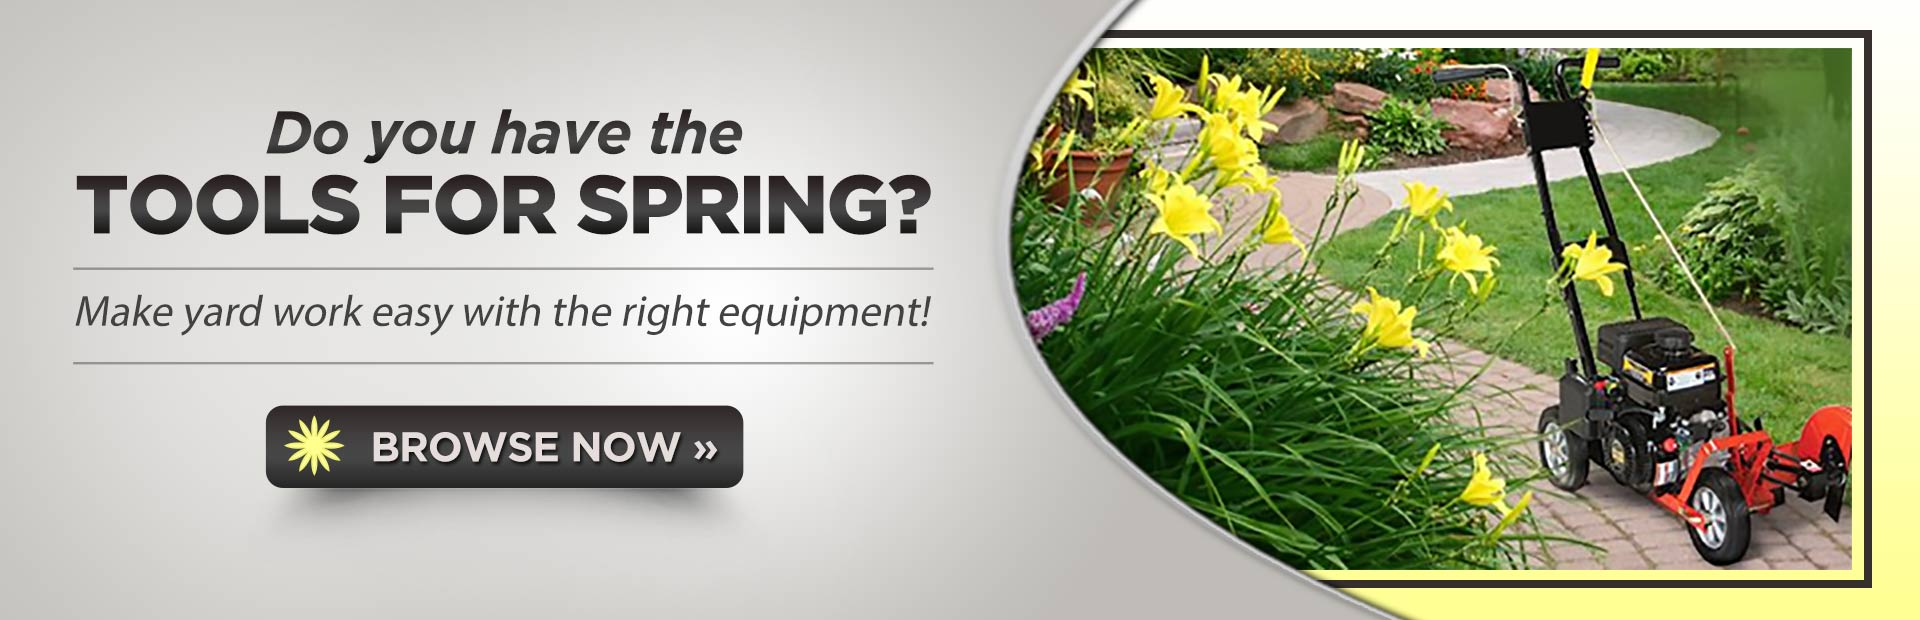 Click here to browse our selection of lawn equipment.